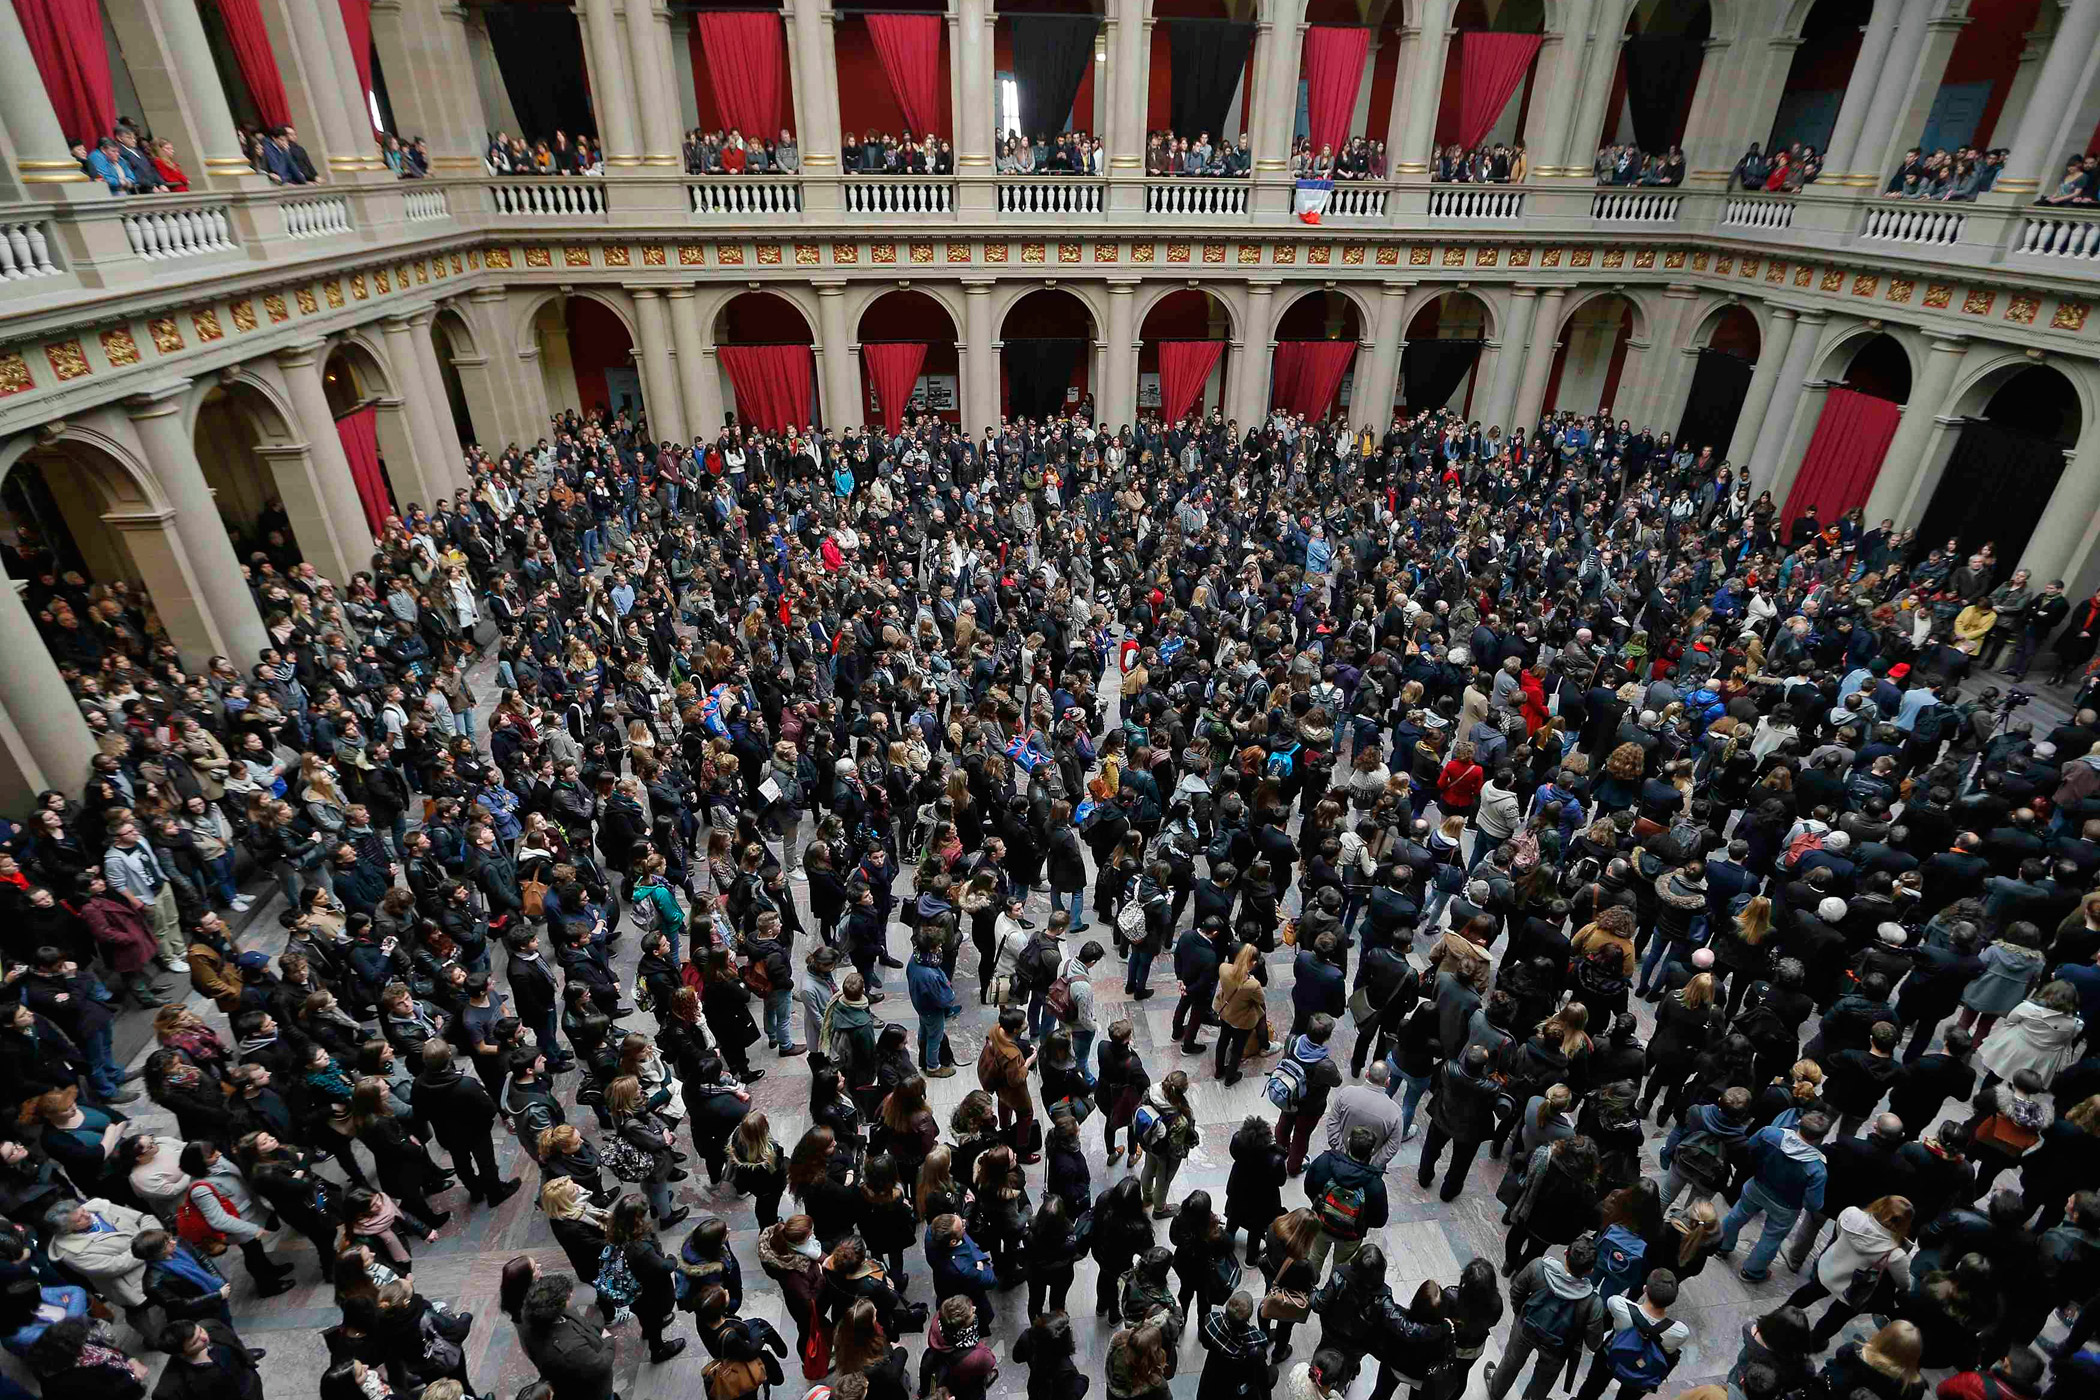 Students and teachers of Strasbourg University observe a minute of silence at the  Palais Universitaire  in Strasbourg, to pay tribute to victims of Friday's attacks on Paris.